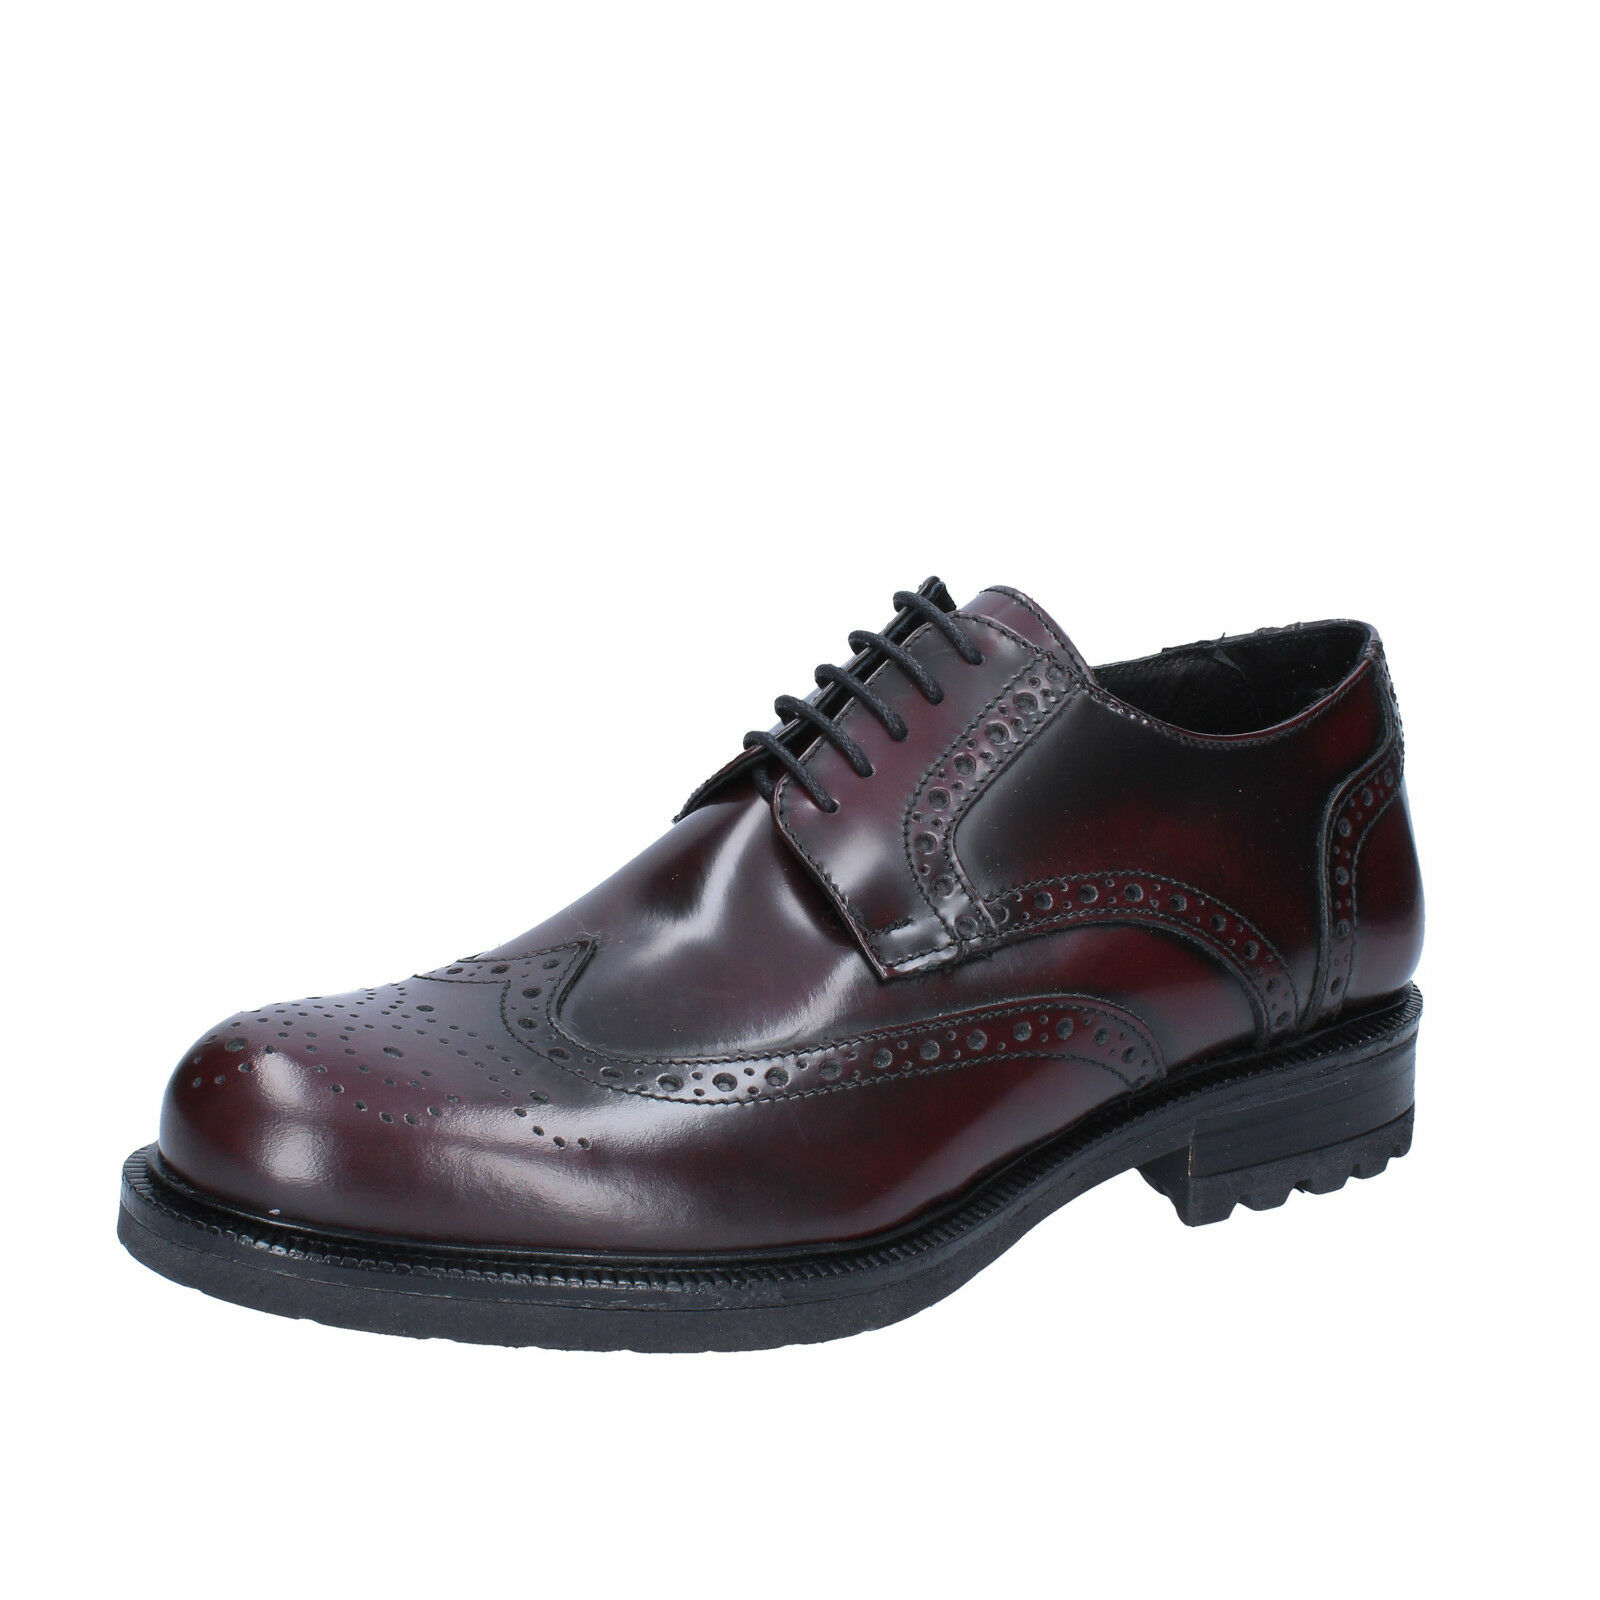 Man zapatos except Baron 40 Classic Bordeaux Leather Glossy bz194-b